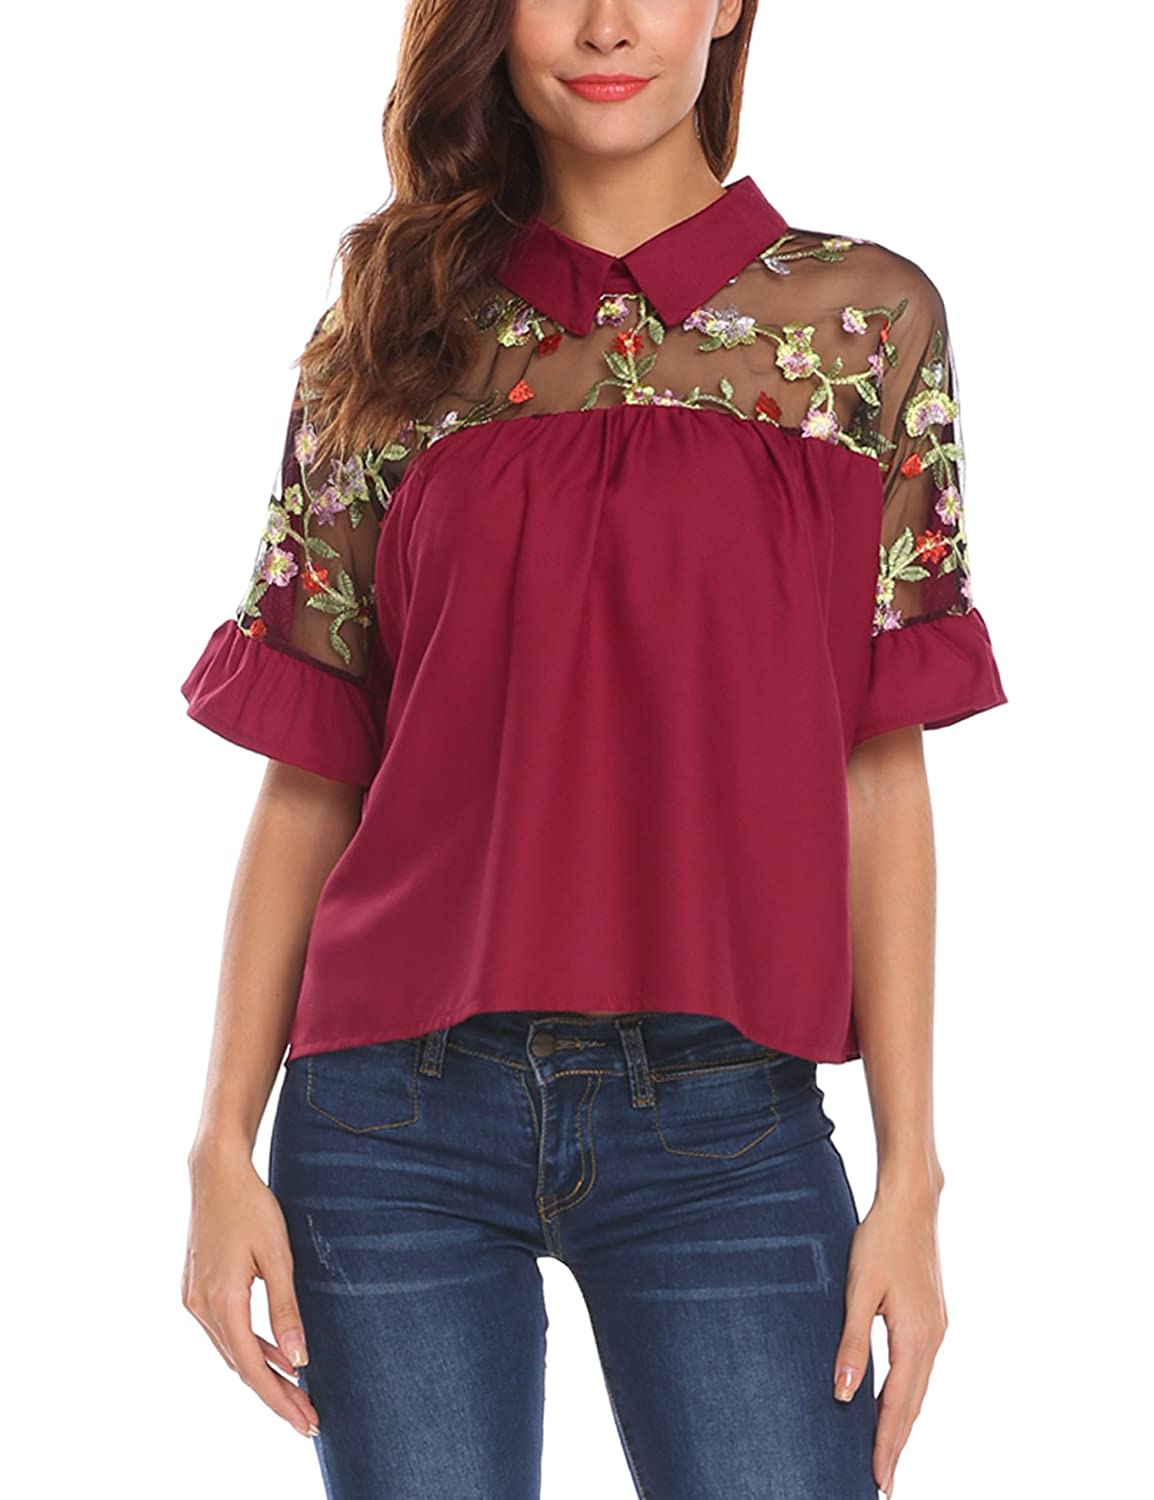 1f43ee3d Sheer neck, collared, embroidered style, cack bow tie short sleeve reffle  blouse. Make of high quality and soft material, comfortable to wear